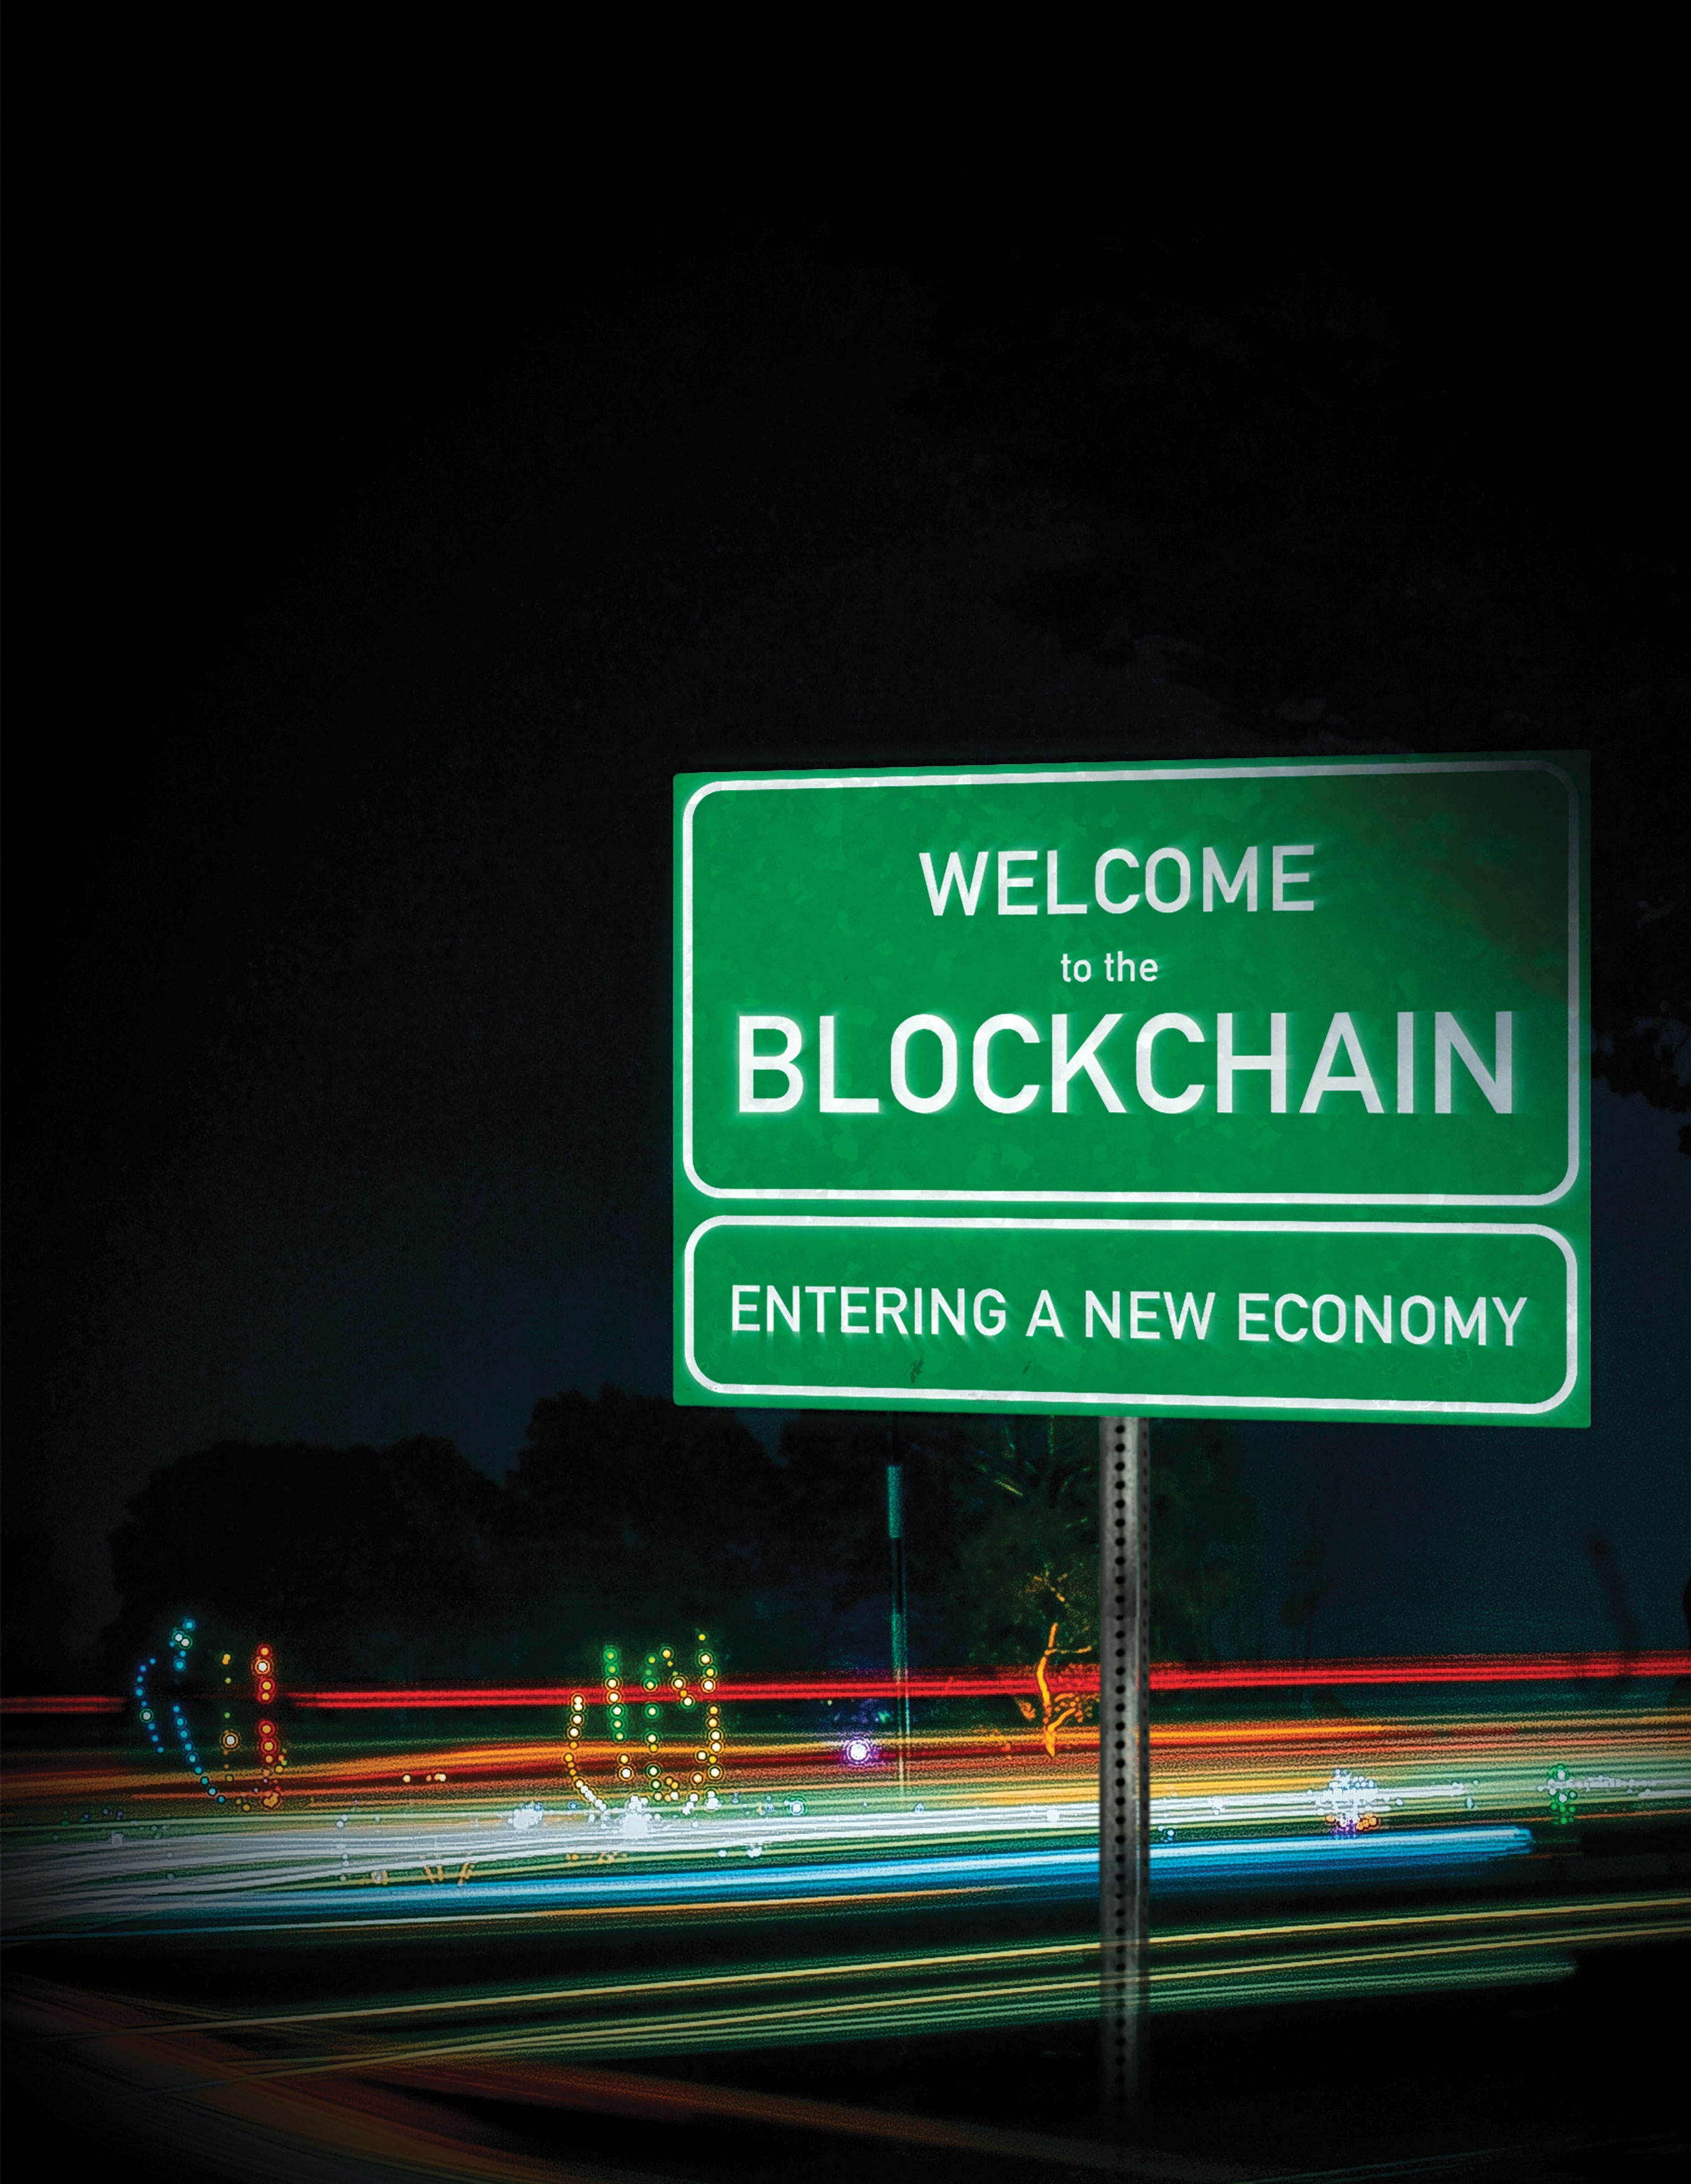 In Blockchain We Trust Mit Technology Review Should It Be Of Interest An Electronic Copy This Manual Is